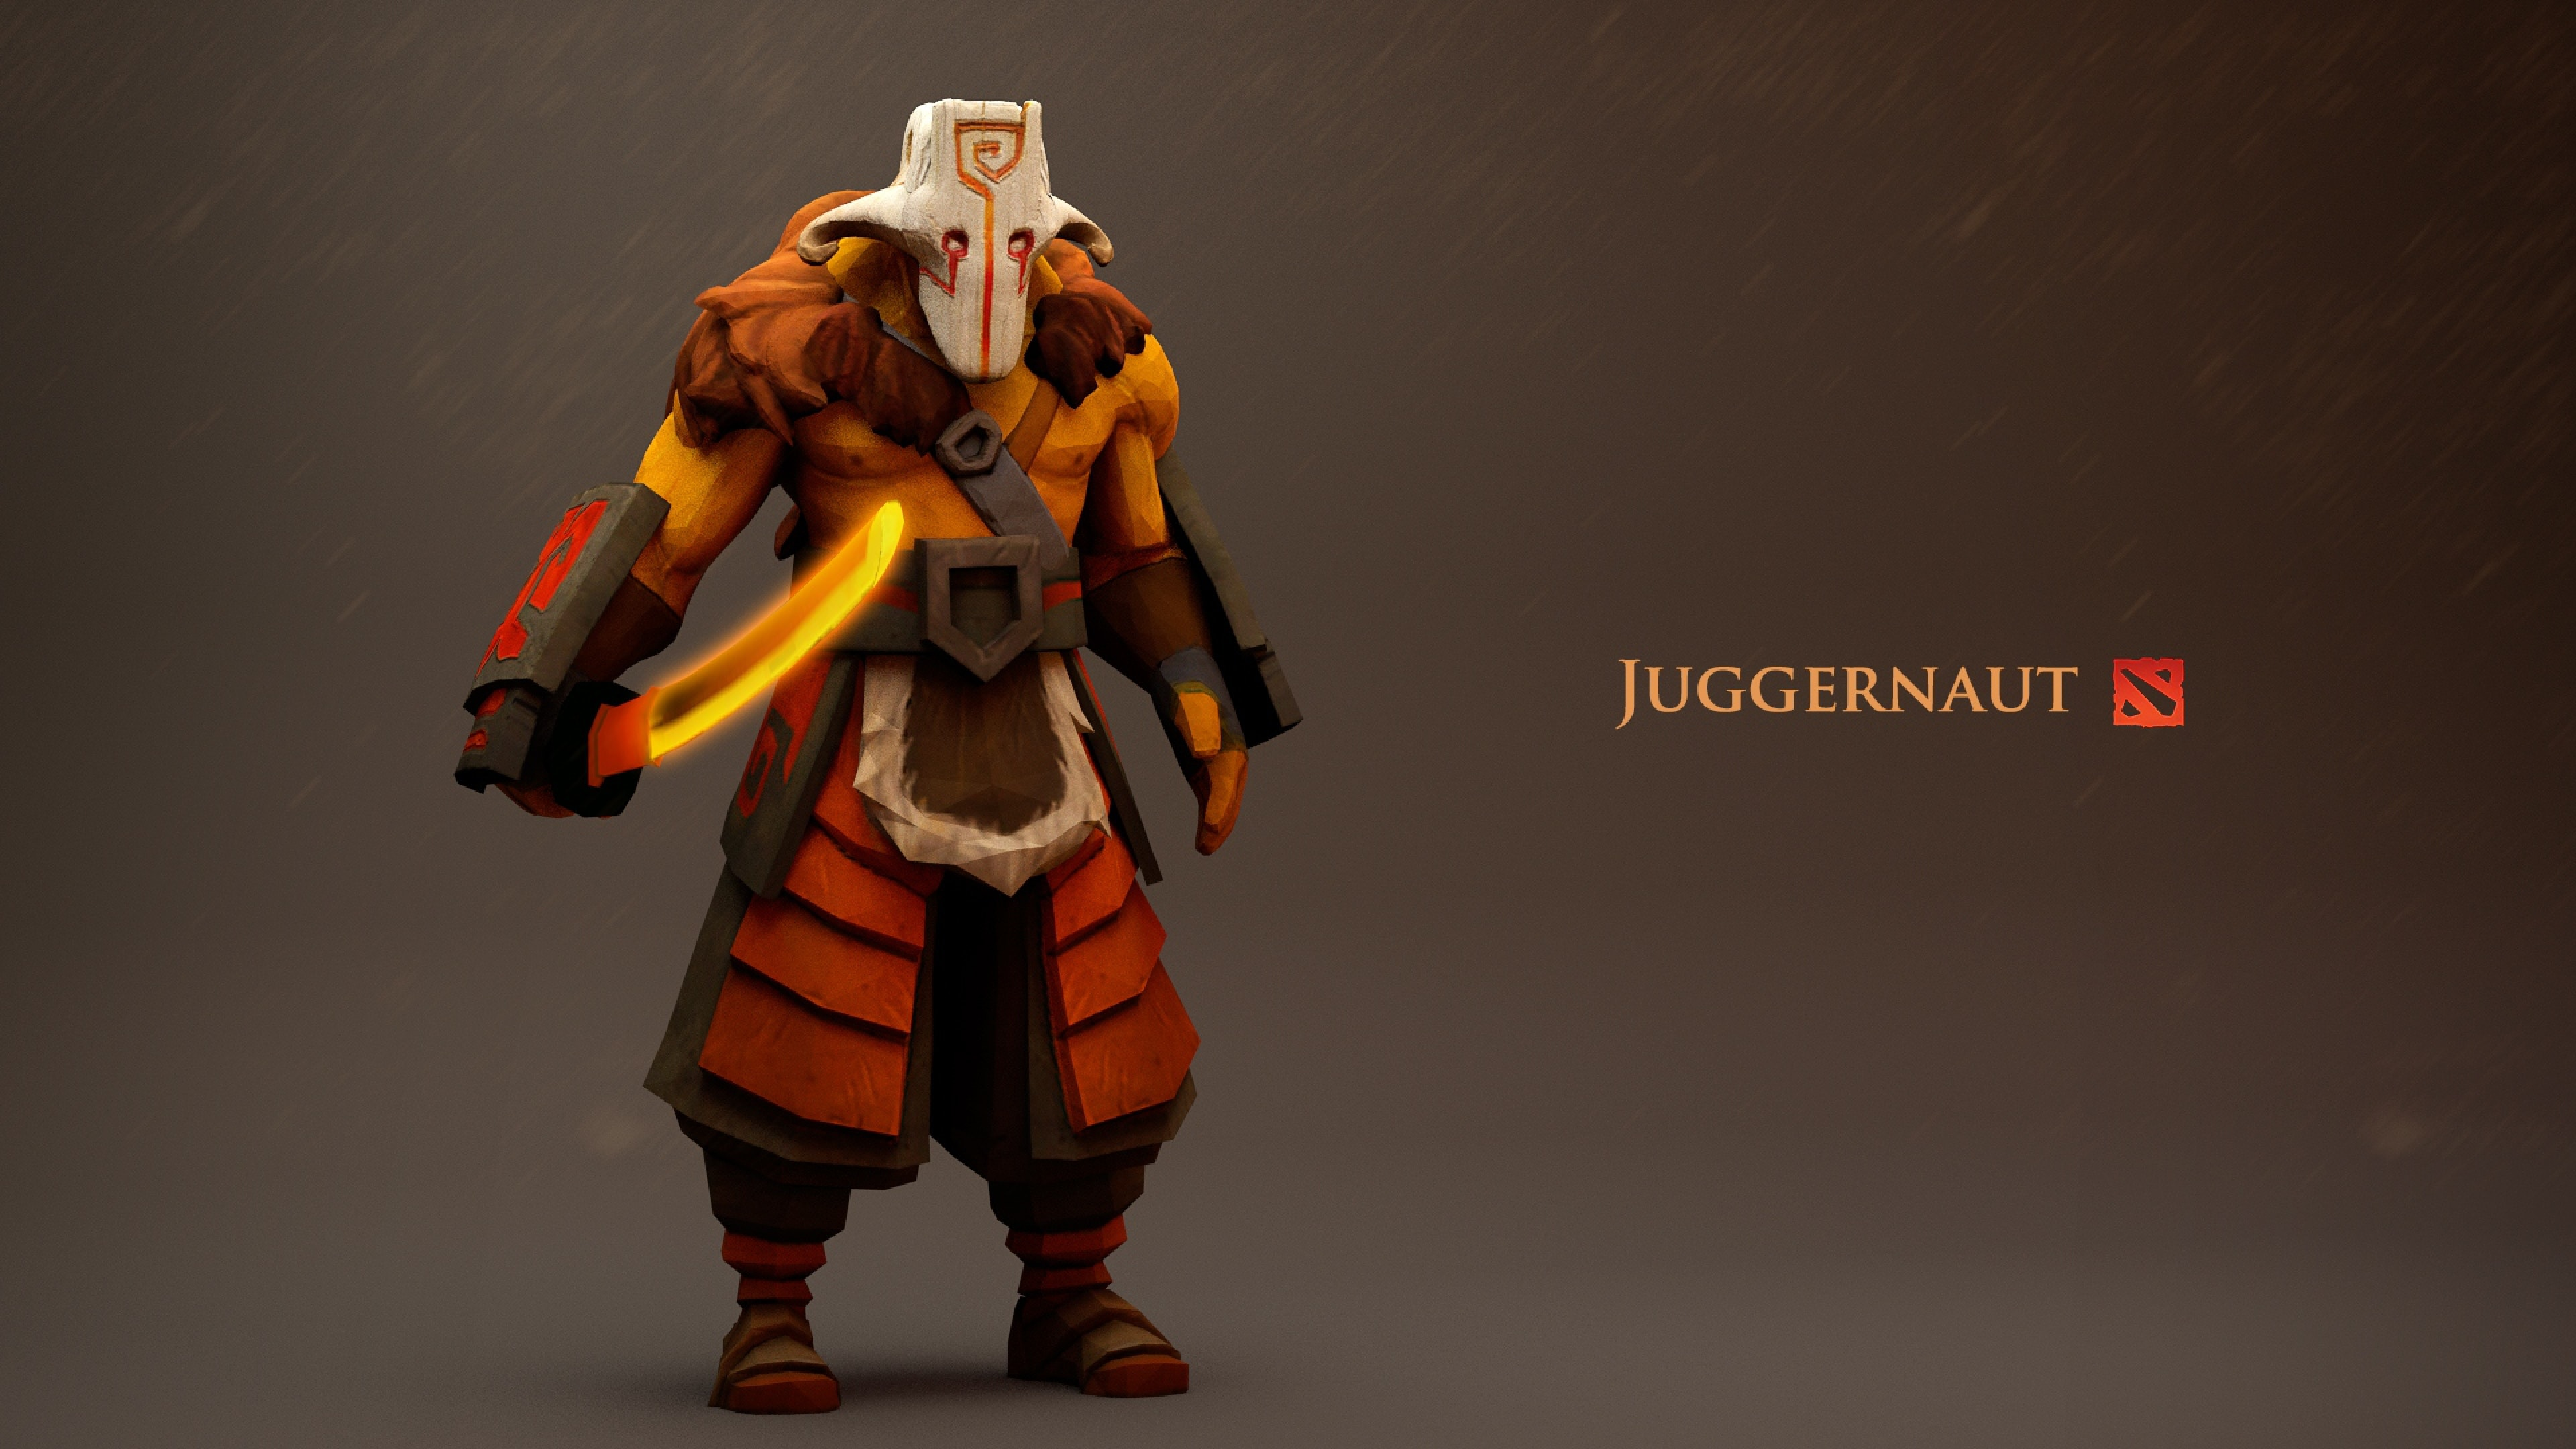 Dota2 : Juggernaut for mobile